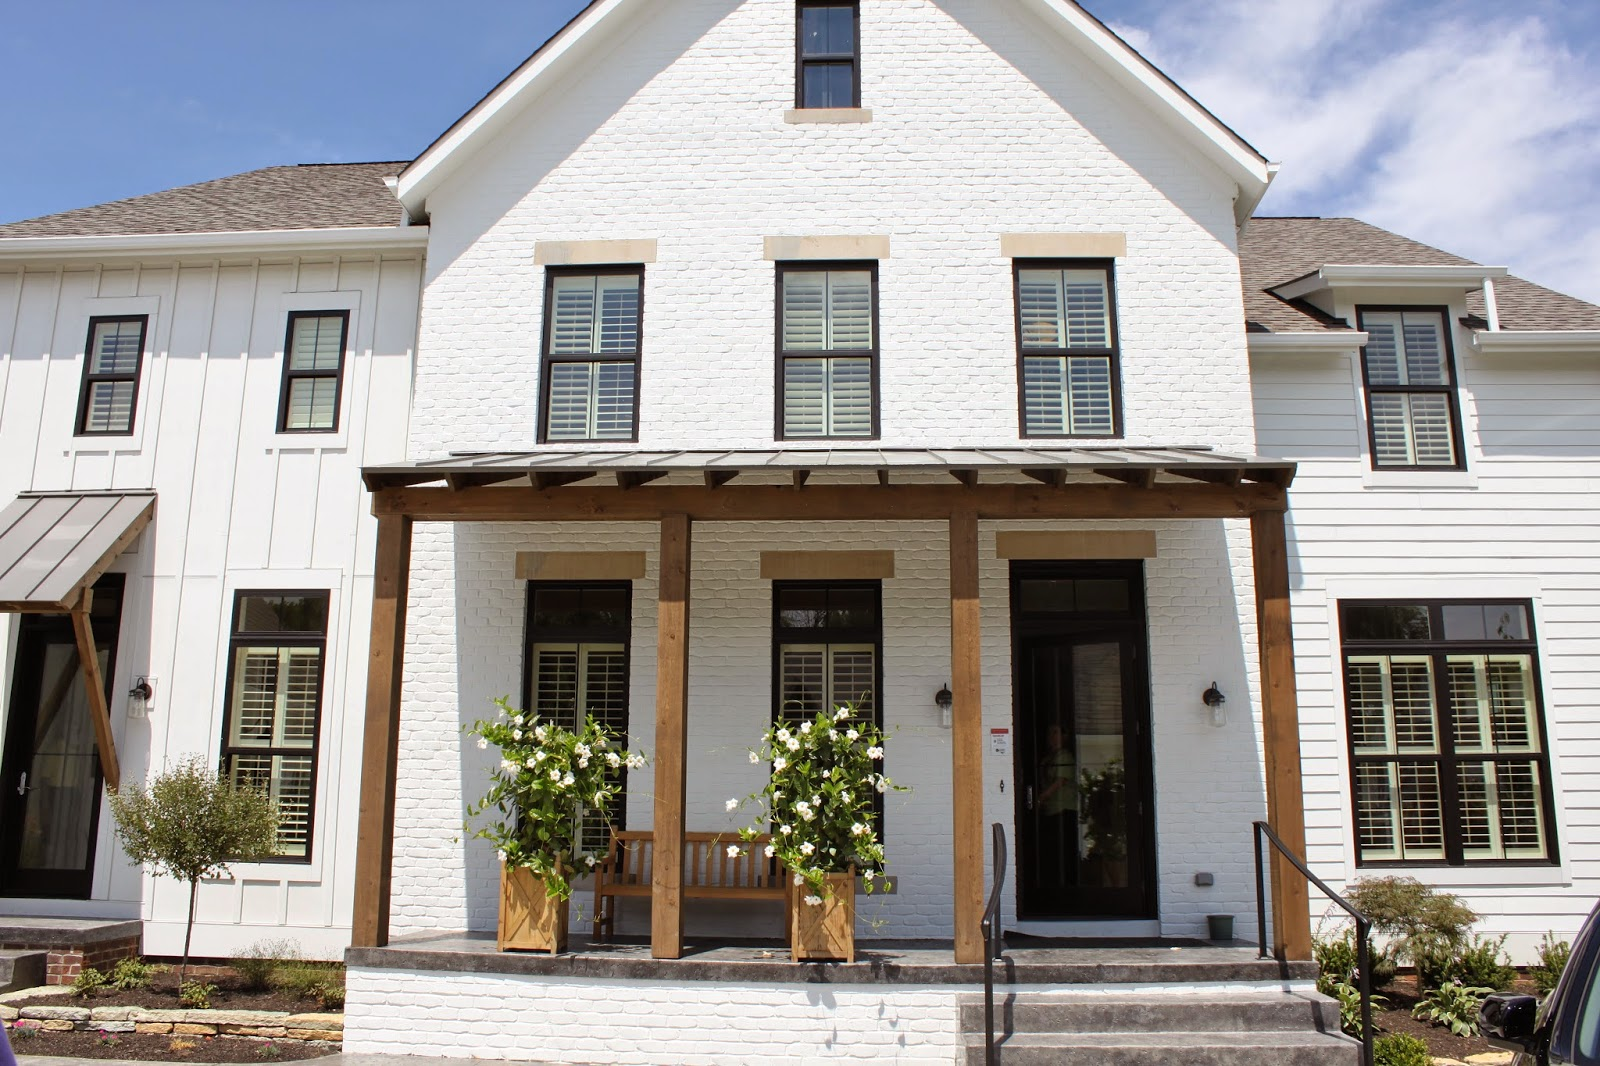 The fat hydrangea parade of homes week 2014 house 3 for Farmhouse style siding